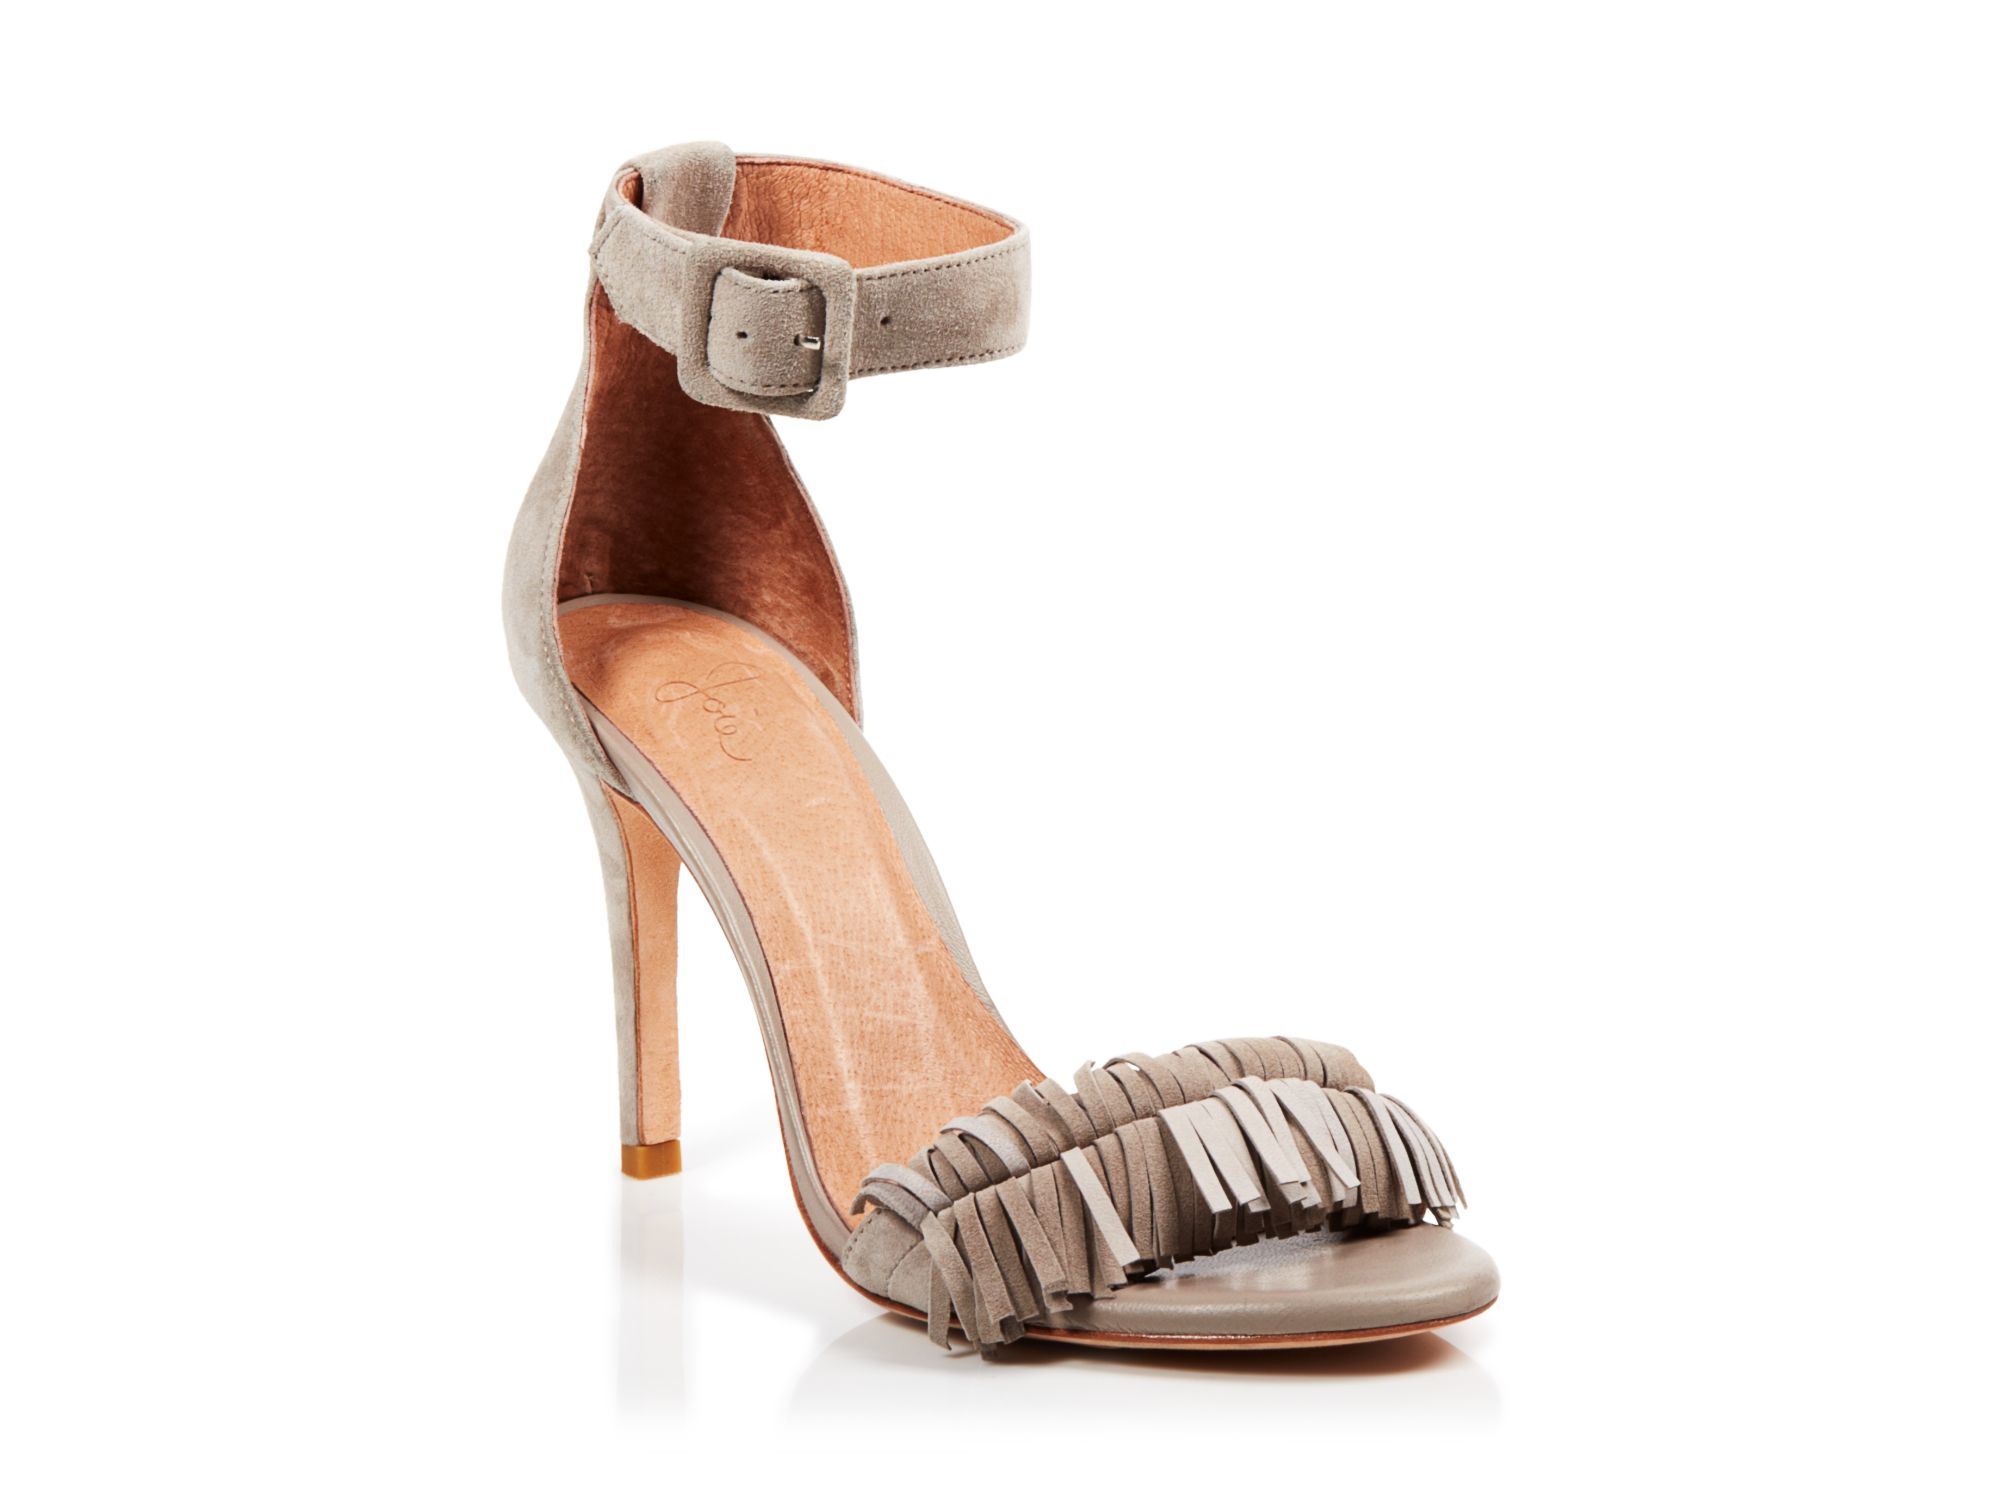 Joie Snakeskin Ankle-Strap Sandals sale latest discount pre order buy cheap reliable cheap sale big discount cheap factory outlet XcmHbGF